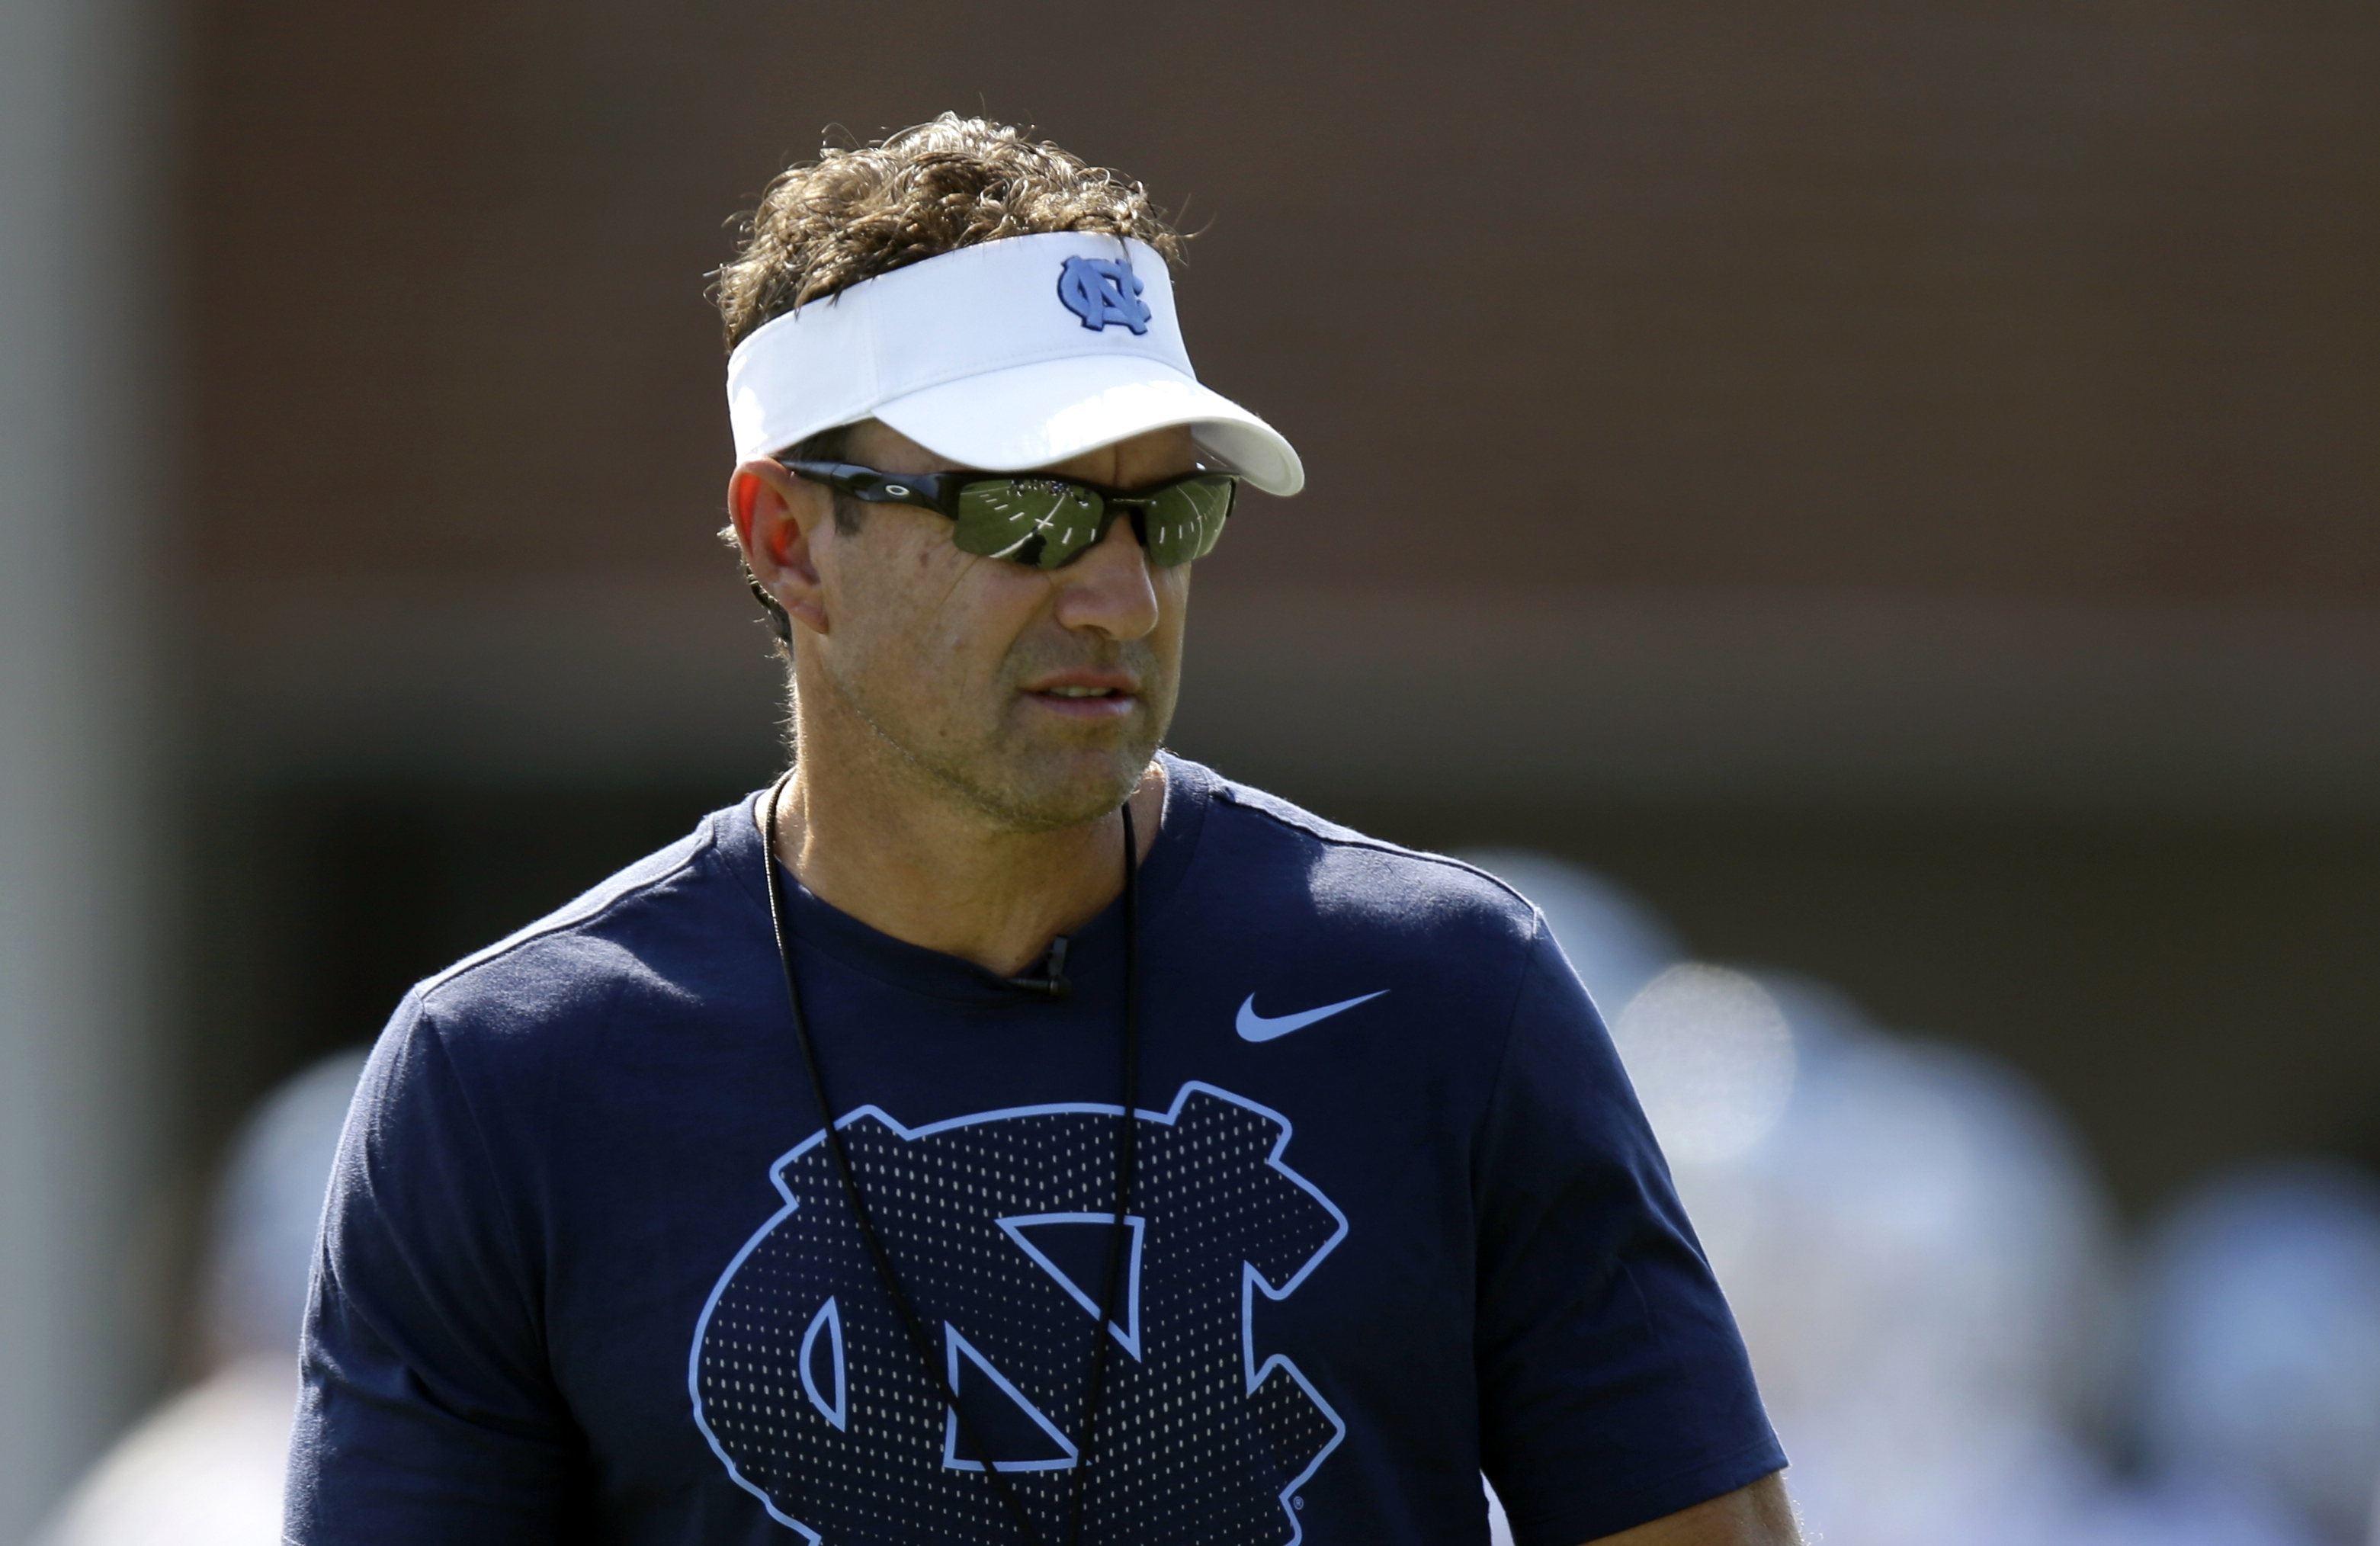 FILE - In this Aug. 3, 2015, file photo, North Carolina coach Larry Fedora watches during the team's first NCAA college football practice of the season in Chapel Hill, N.C. Fedora walked into his weekly news conference Monday, Sept. 7, 2015, knowing the q